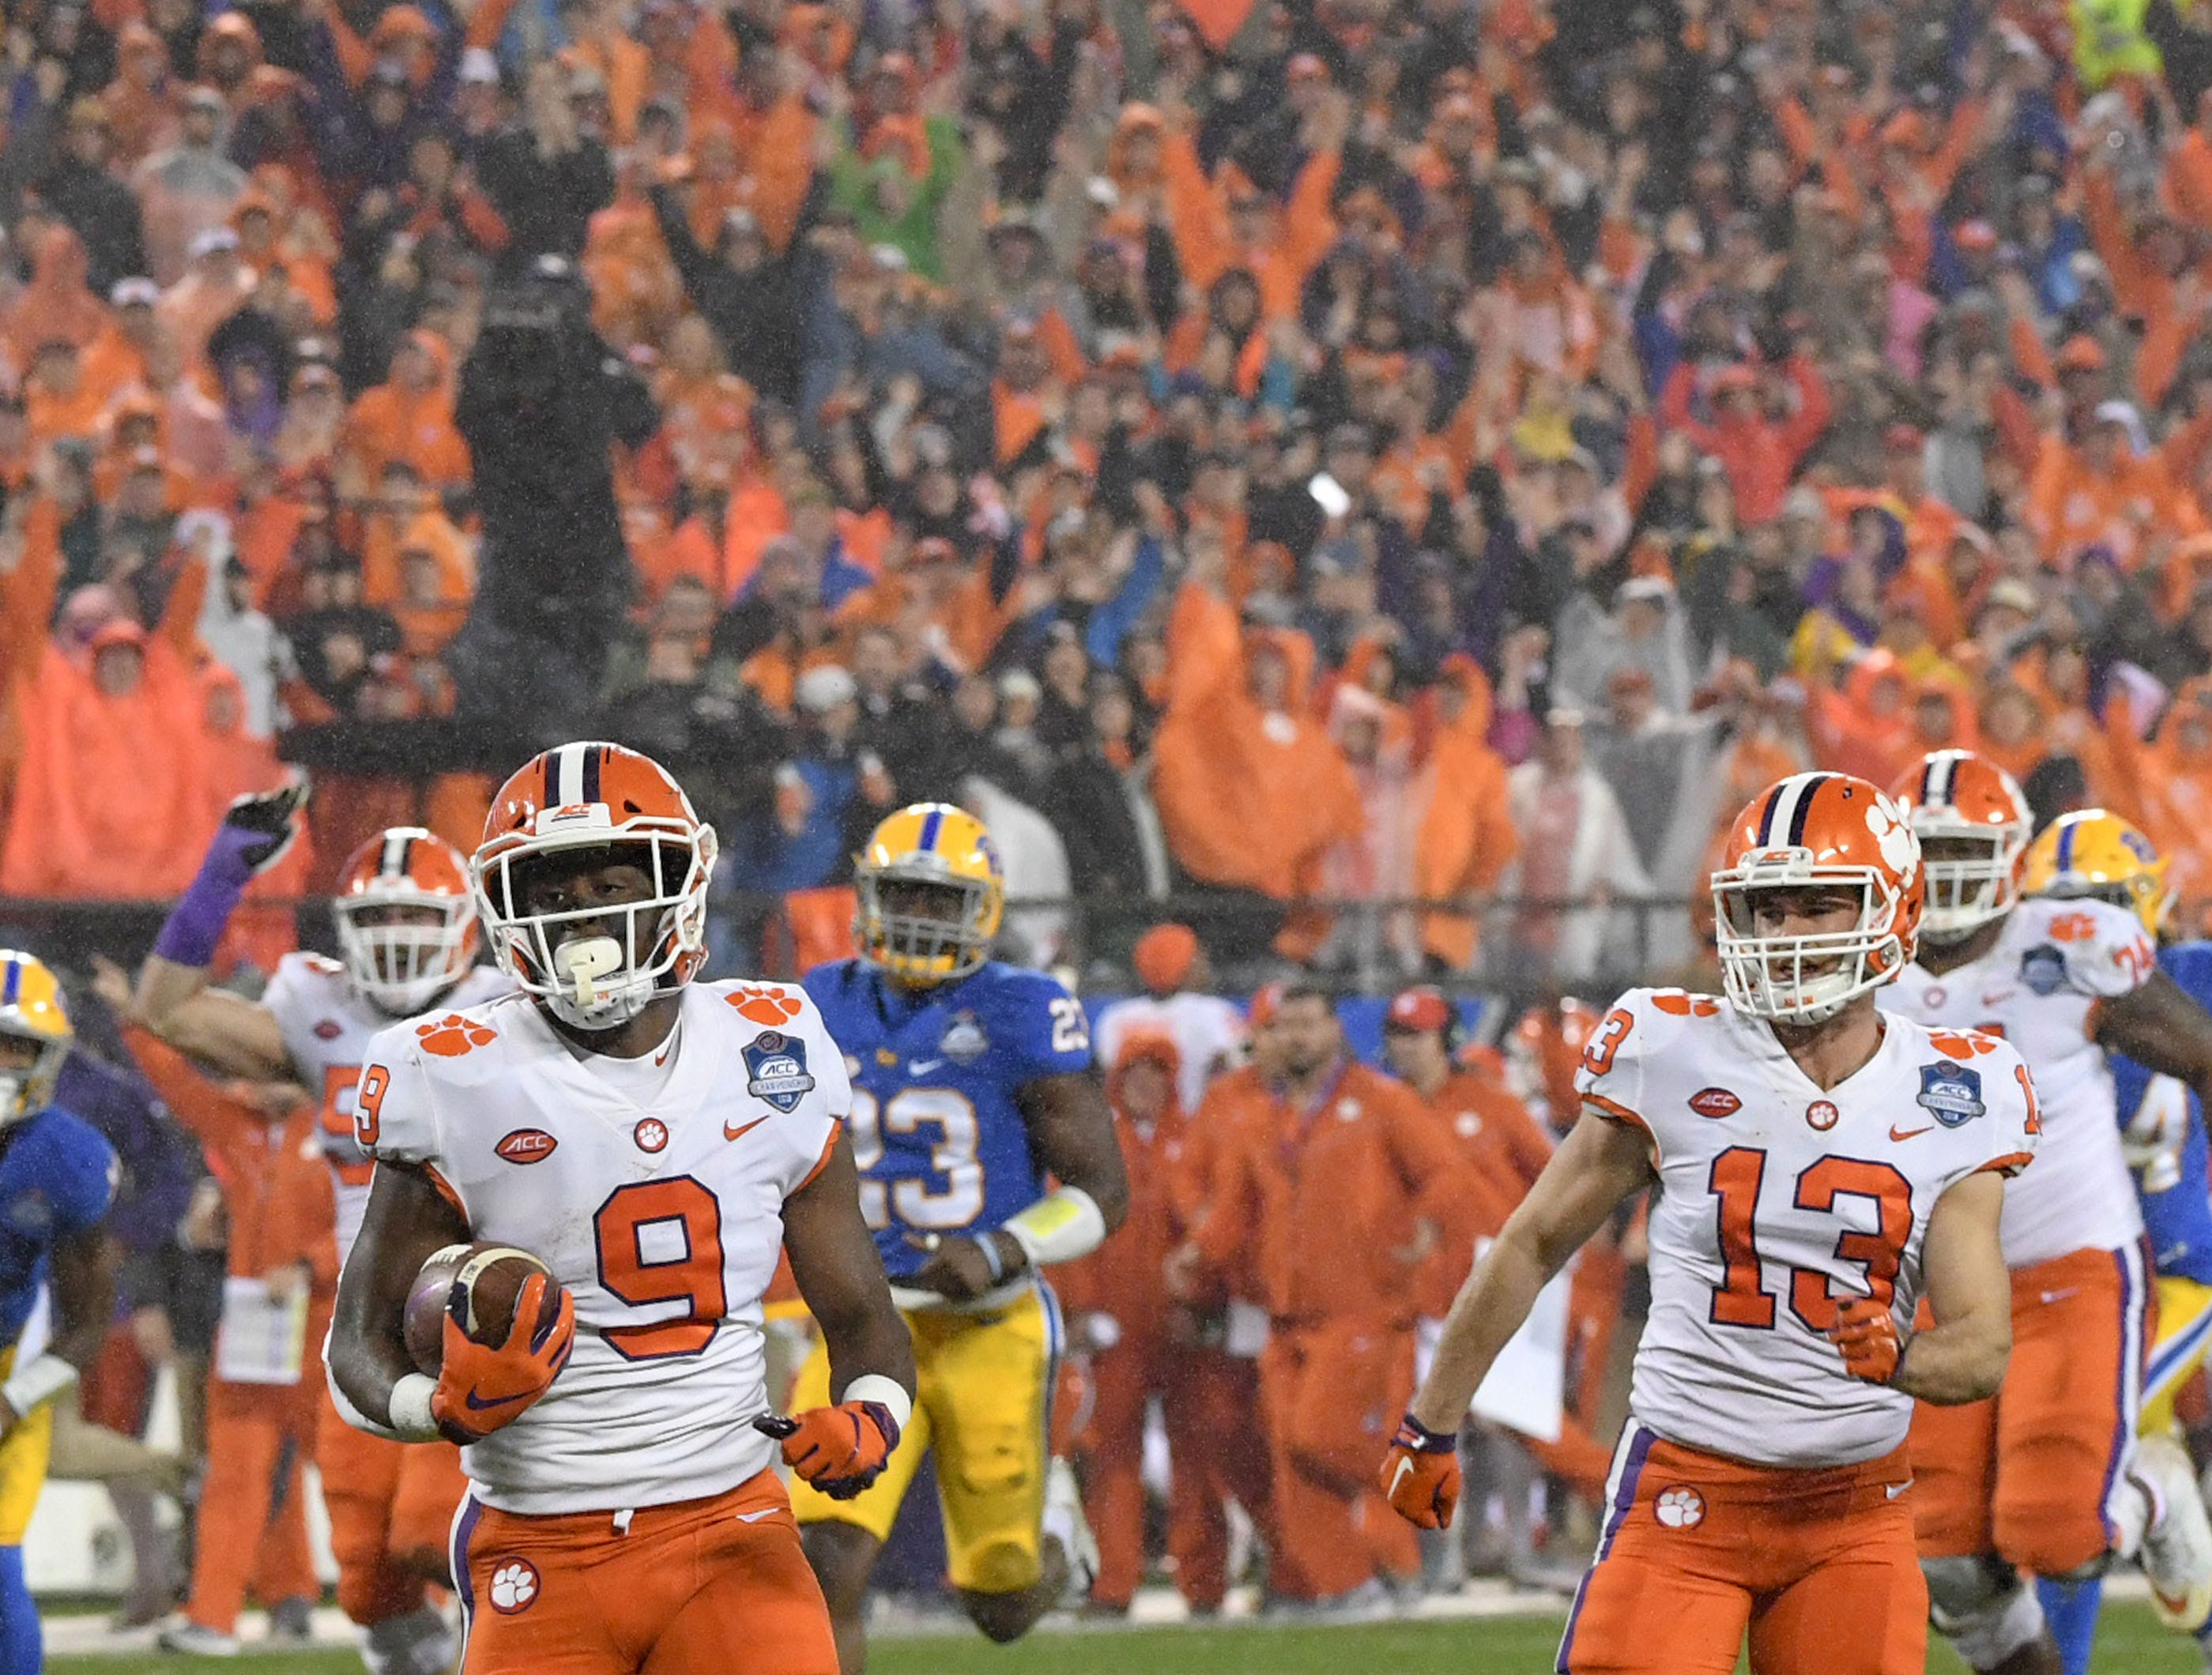 Clemson running back Travis Etienne (9) runs 75 yards for a touchdown against Pittsburgh during the first quarter of the Dr. Pepper ACC football championship at Bank of America Stadium in Charlotte, N.C. on Saturday, December 1, 2018.